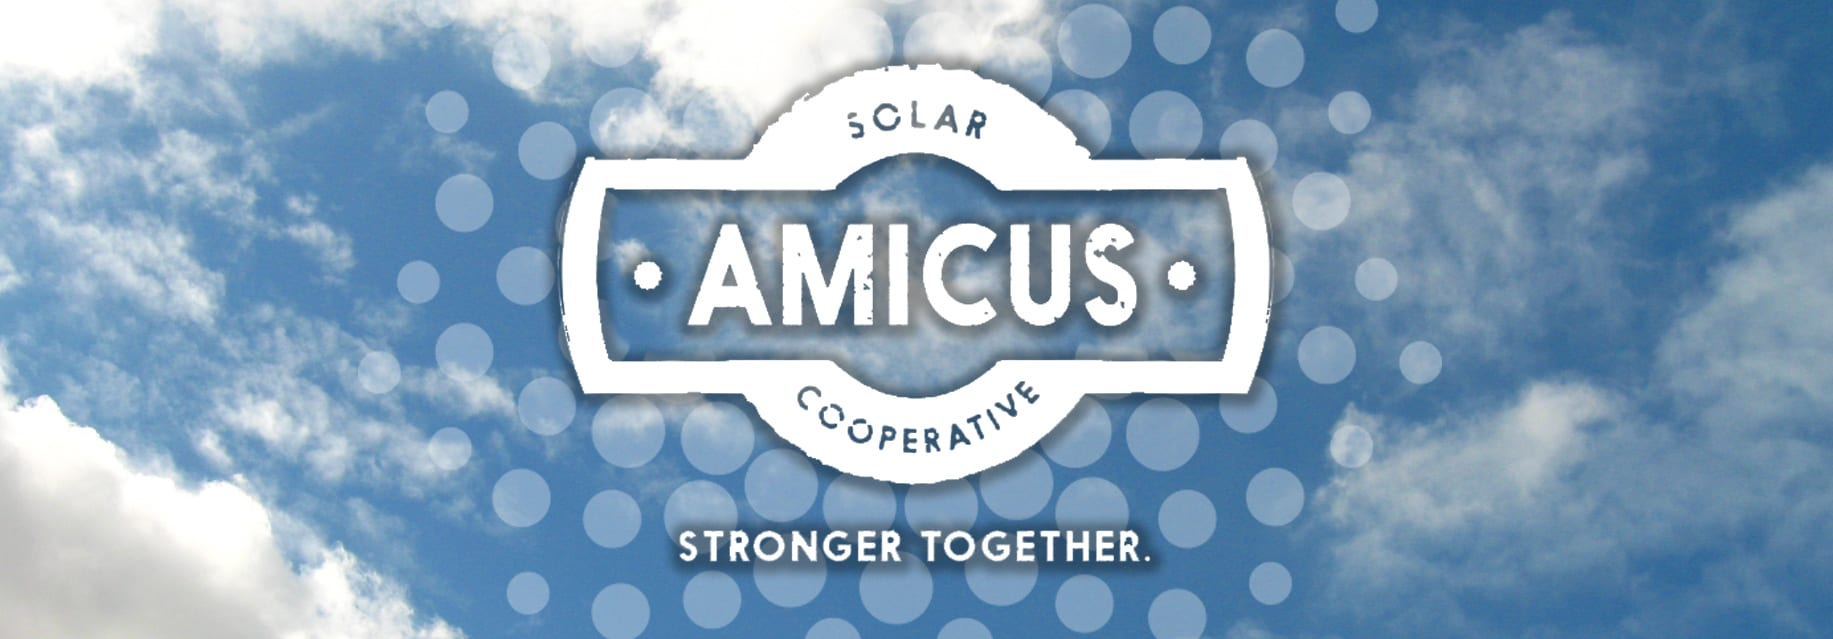 Amicus Banner